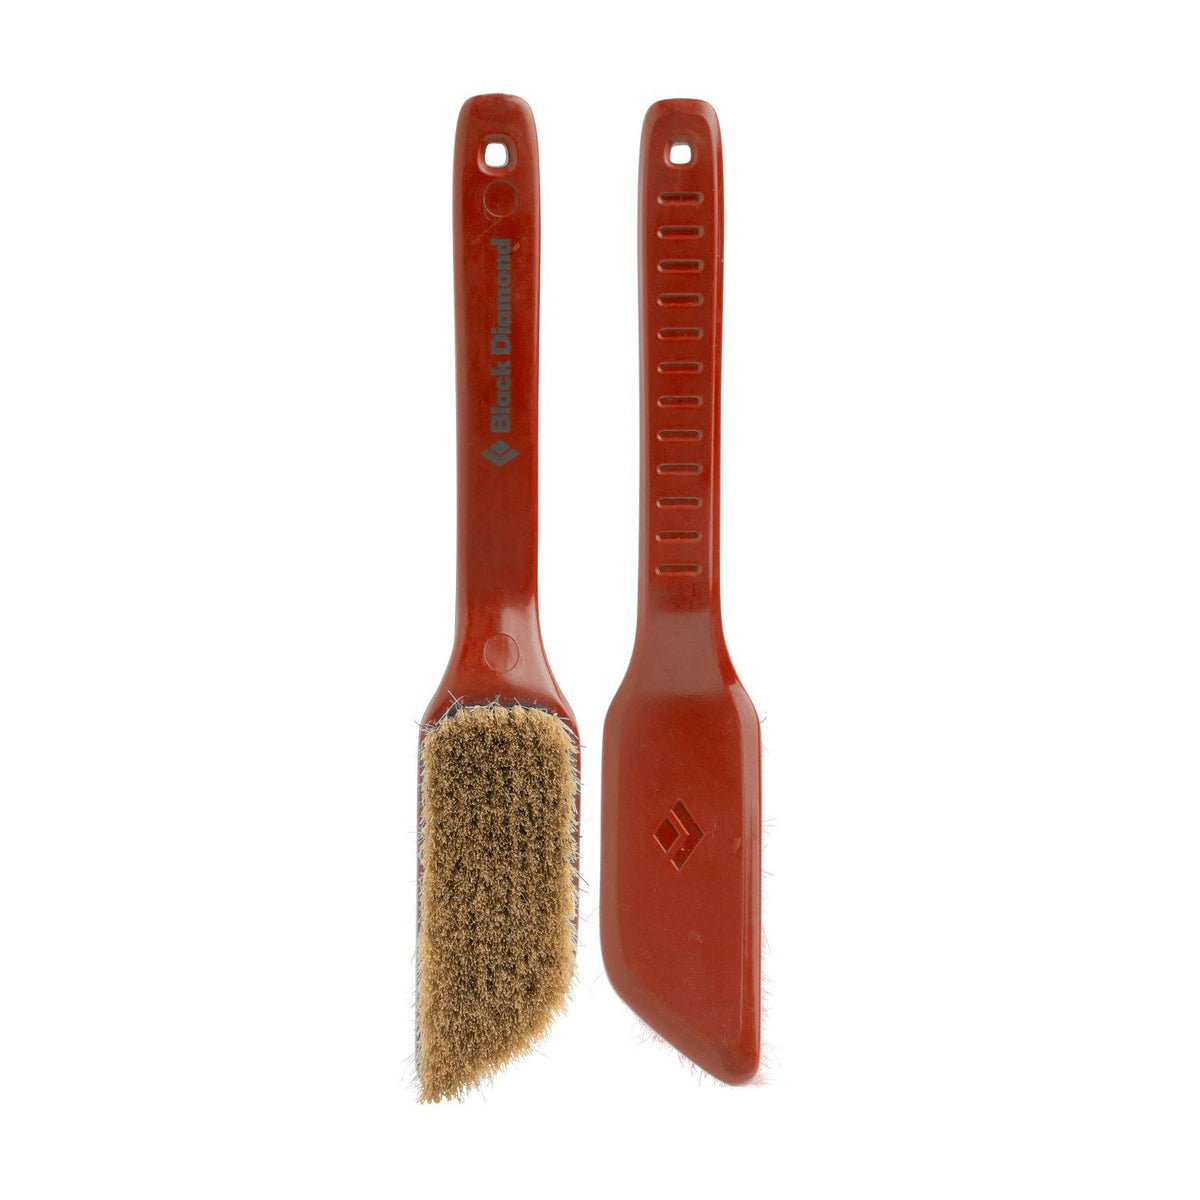 Pair of red Black Diamond Boars Hair Brushes - Medium, 1 shown facing and 1 shown in the reverse